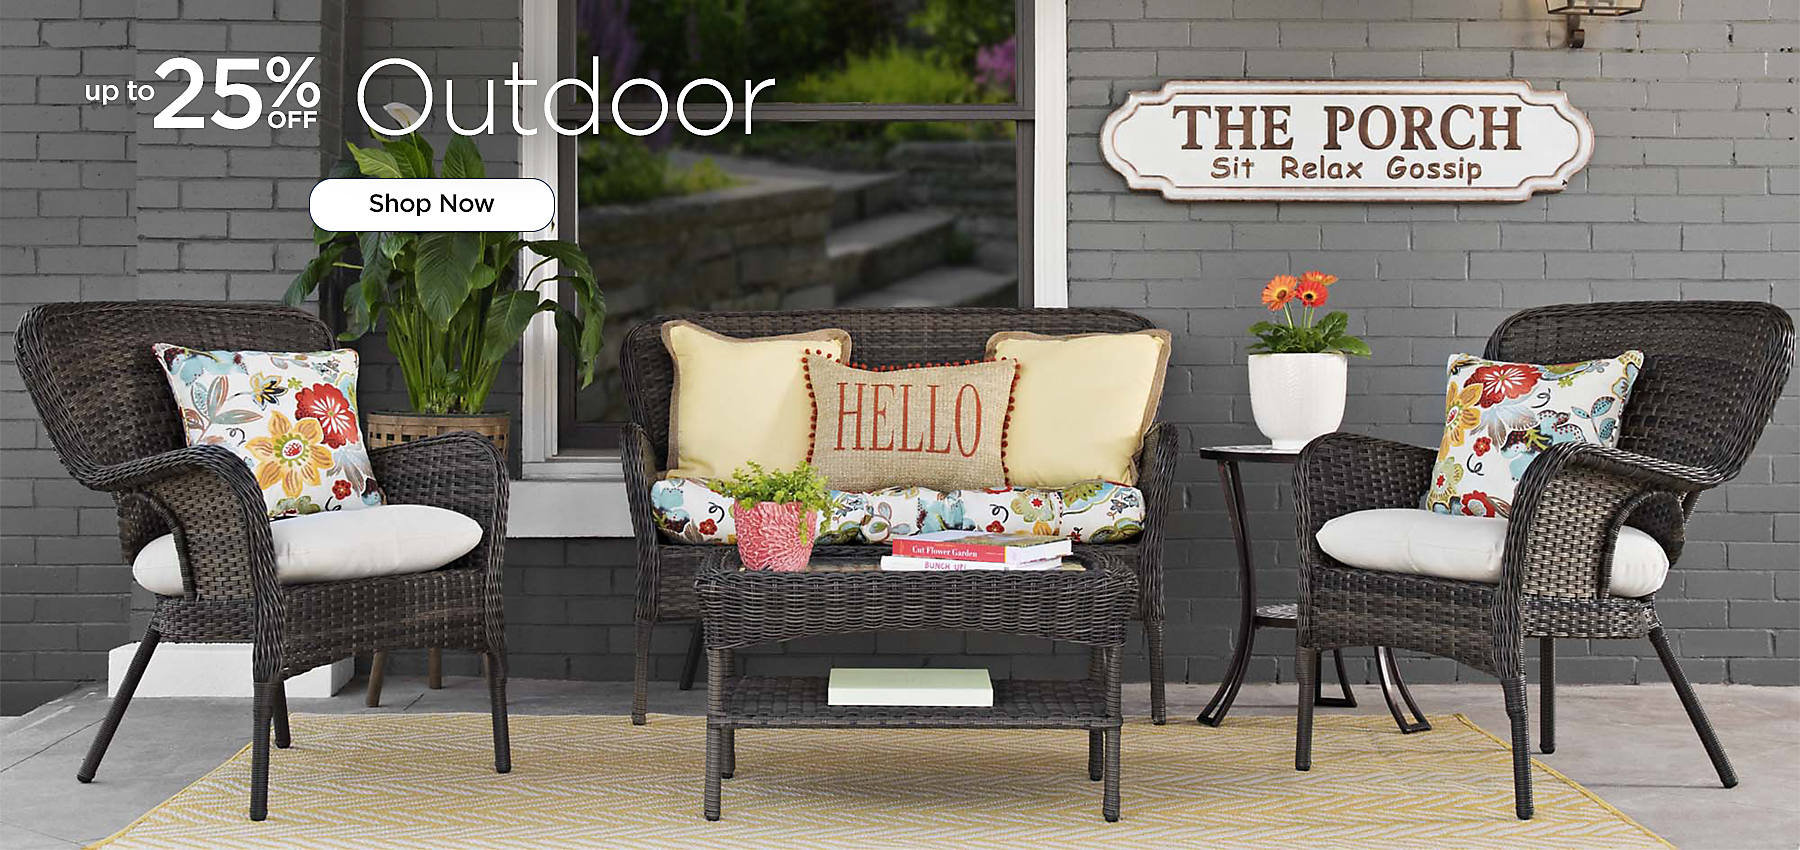 Up to 25% Off Outdoor - Shop Now